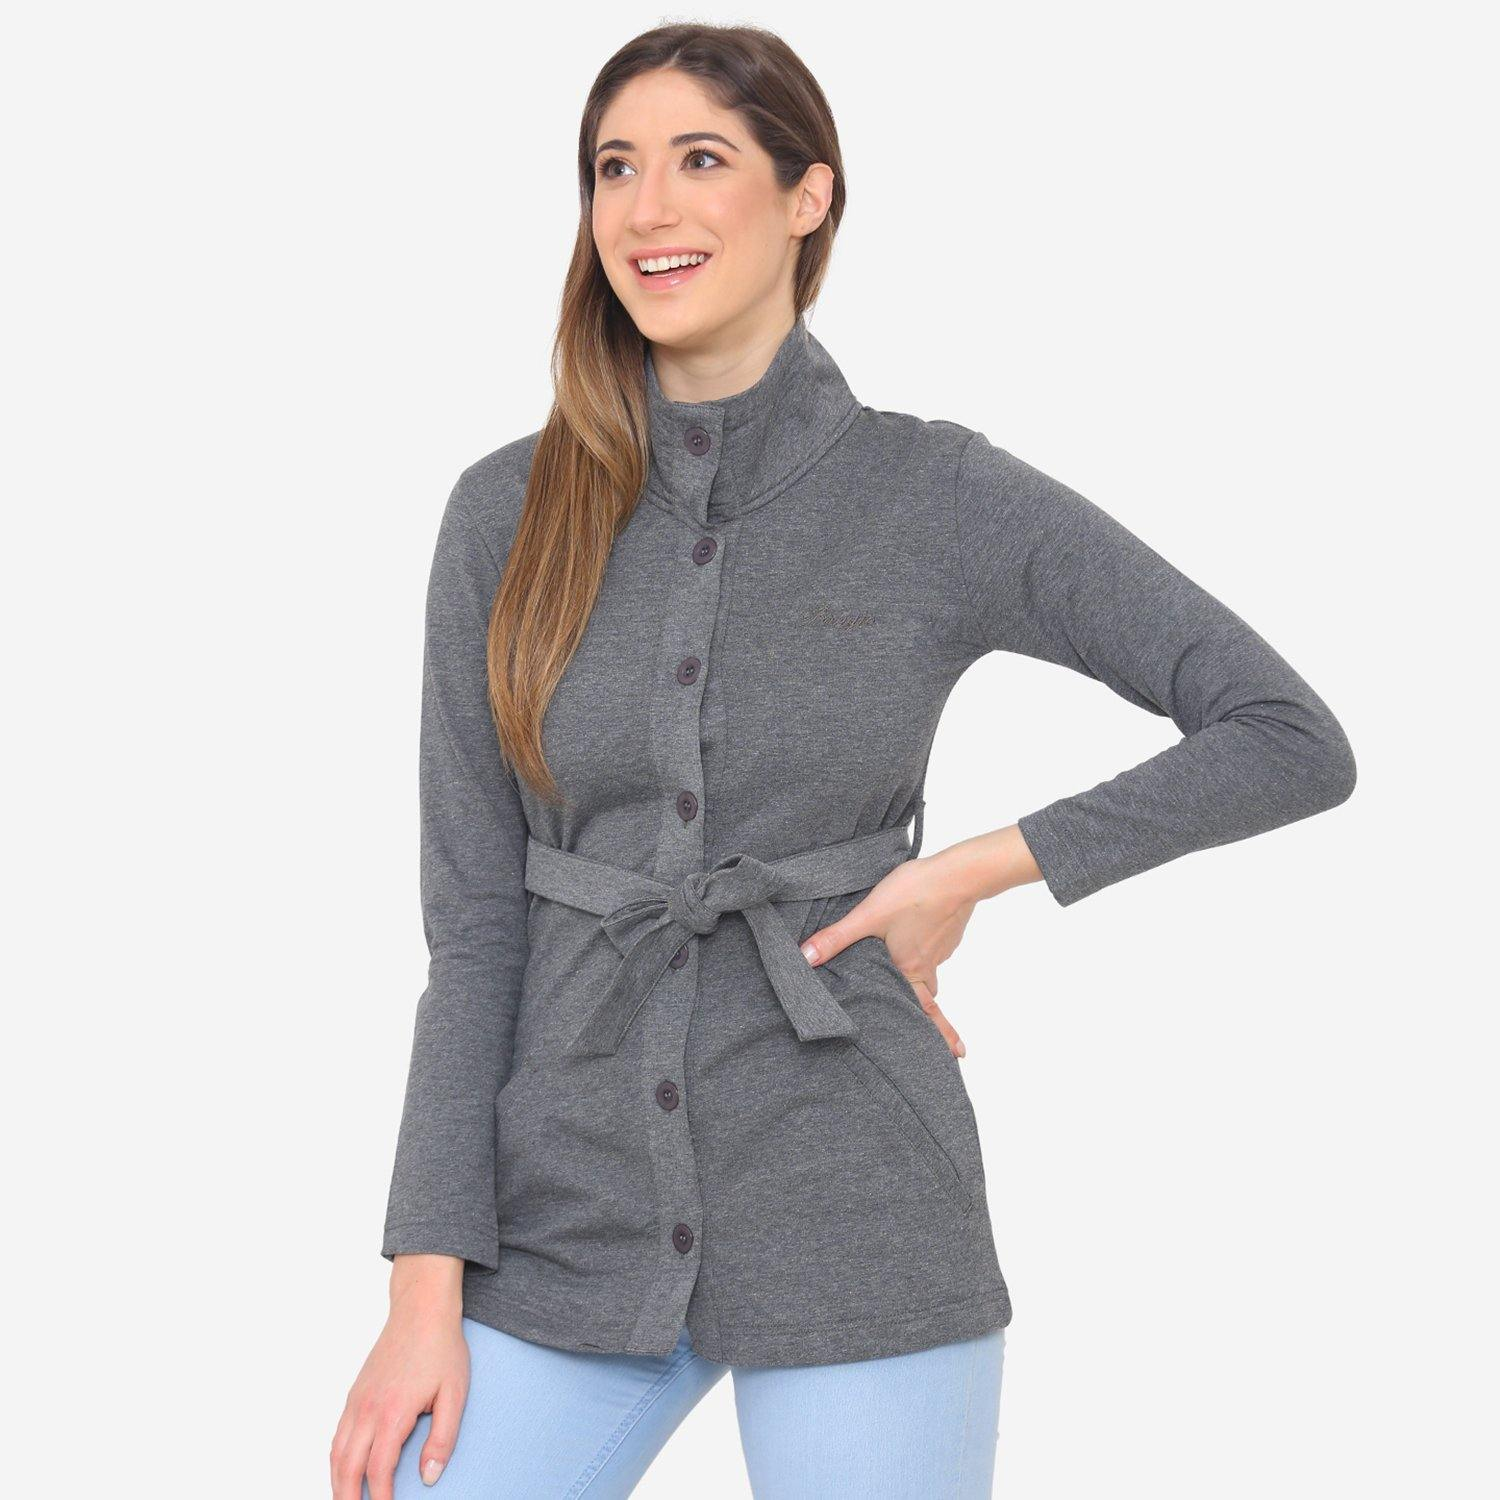 Women's Stylish & Comfy  Jacket - Anthra